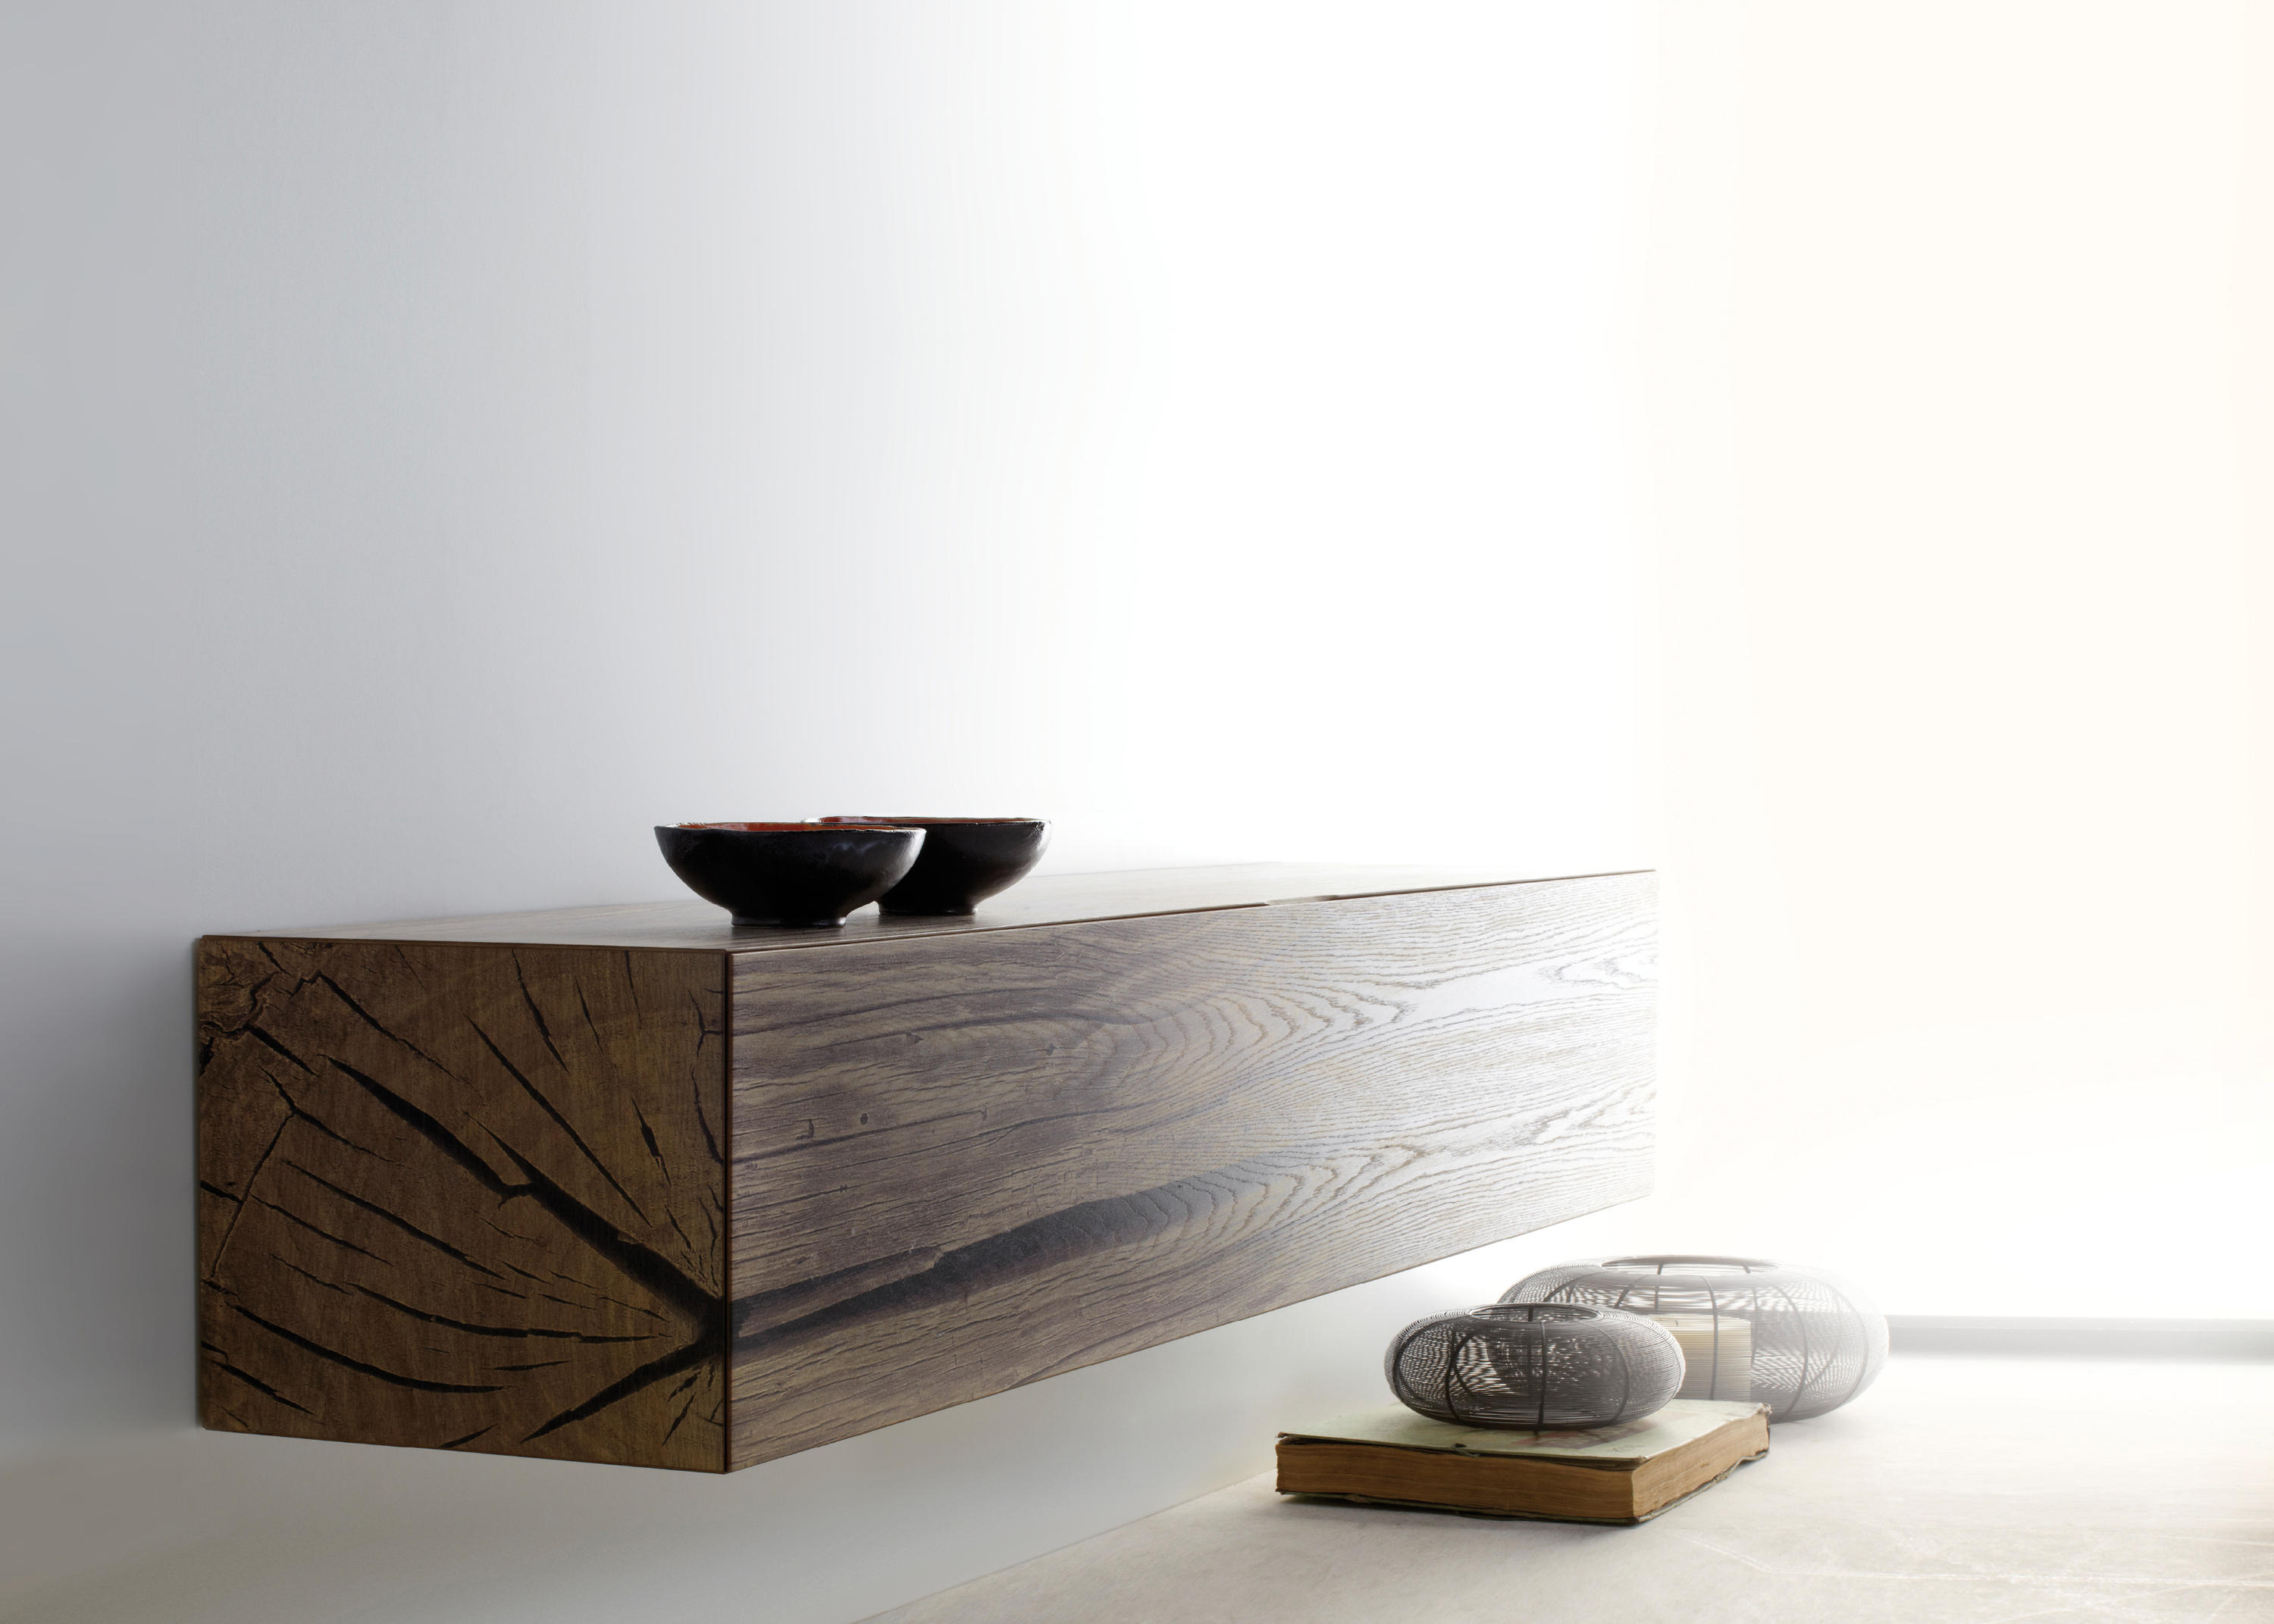 Sideboard Hängend Holz Box Silence Sideboard Sideboards Kommoden Von Morizza